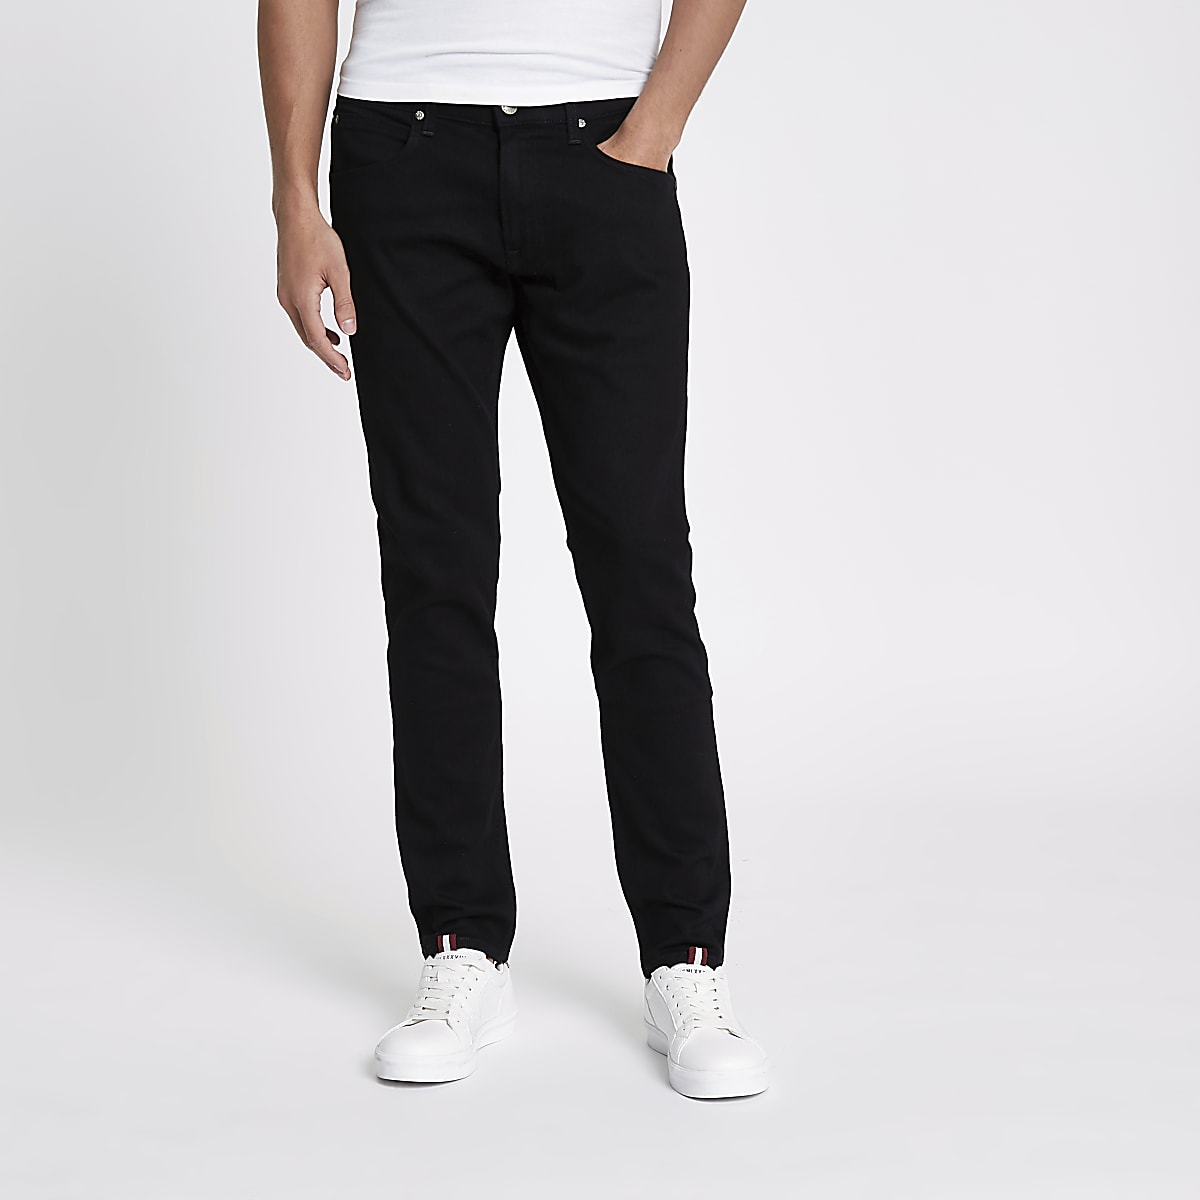 1b35cdf548 Lee black slim fit tapered Luke jeans - Tapered Jeans - Jeans - men